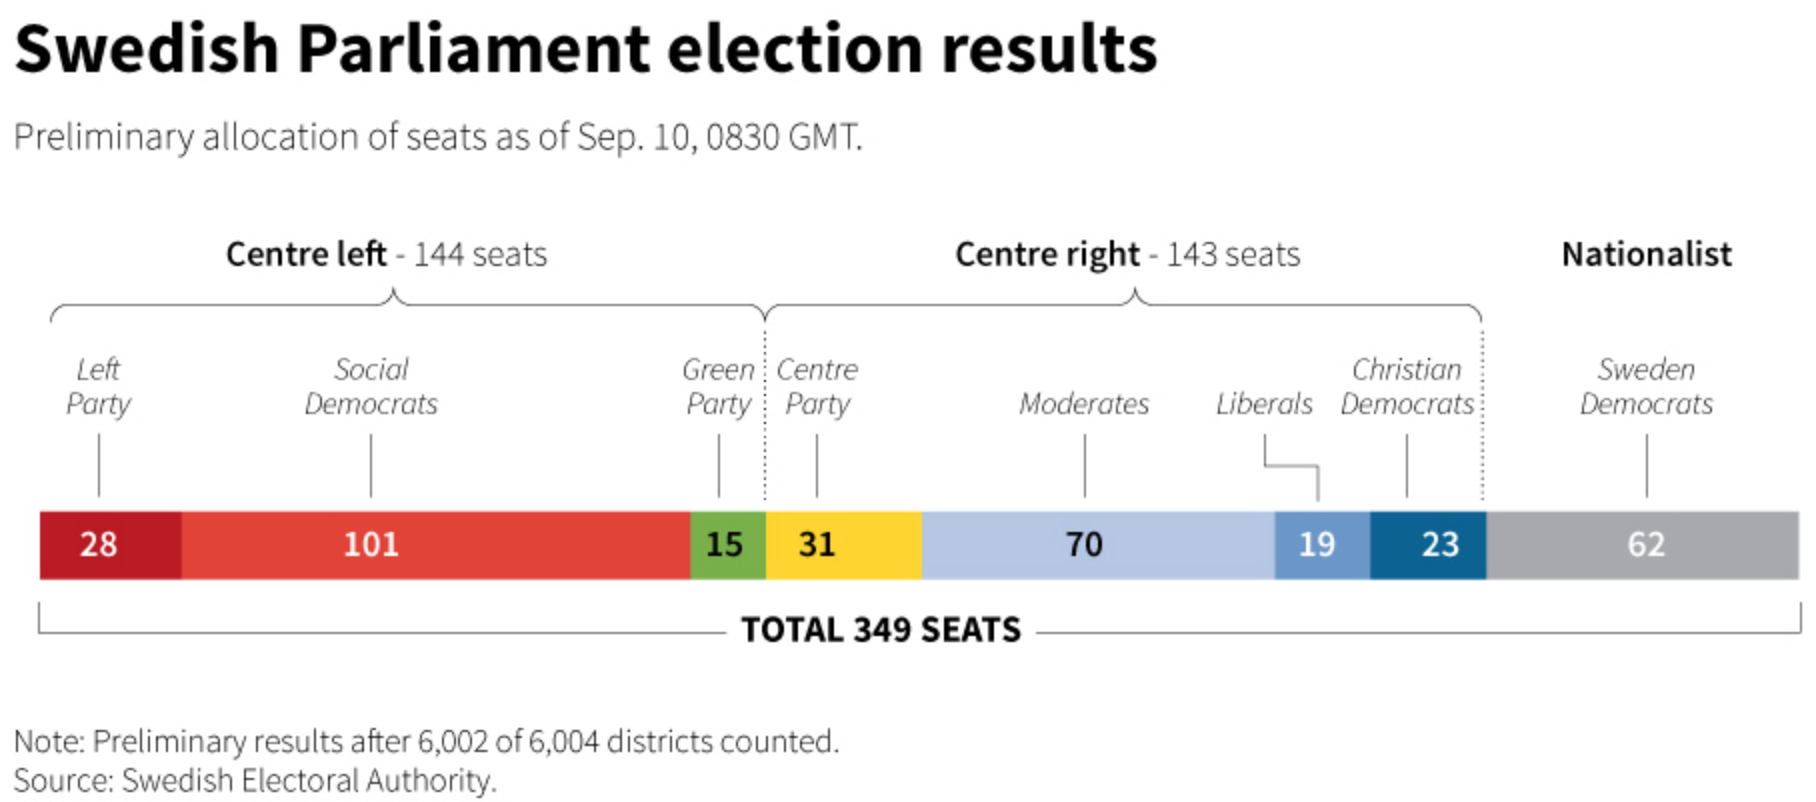 Here the Sweden Democrats are grey.